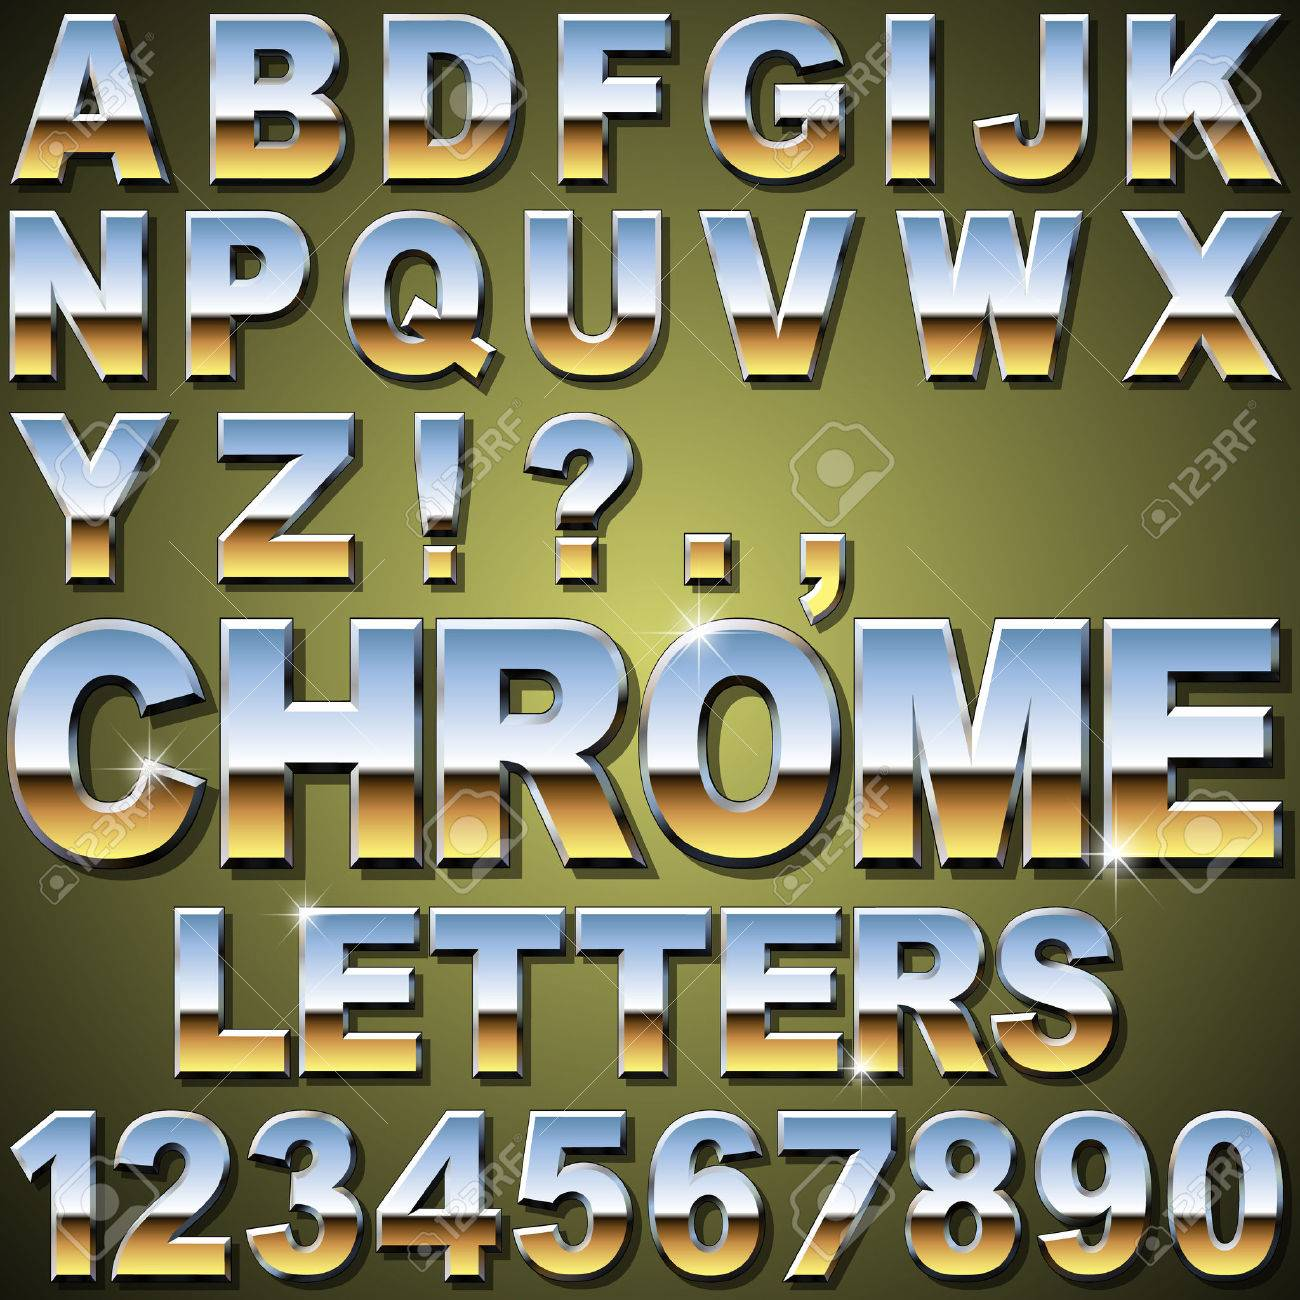 Metal Letters And Numbers Extraordinary An Alphabet Sit Of Shiny Chrome Metal Letters And Numbers Royalty Design Ideas